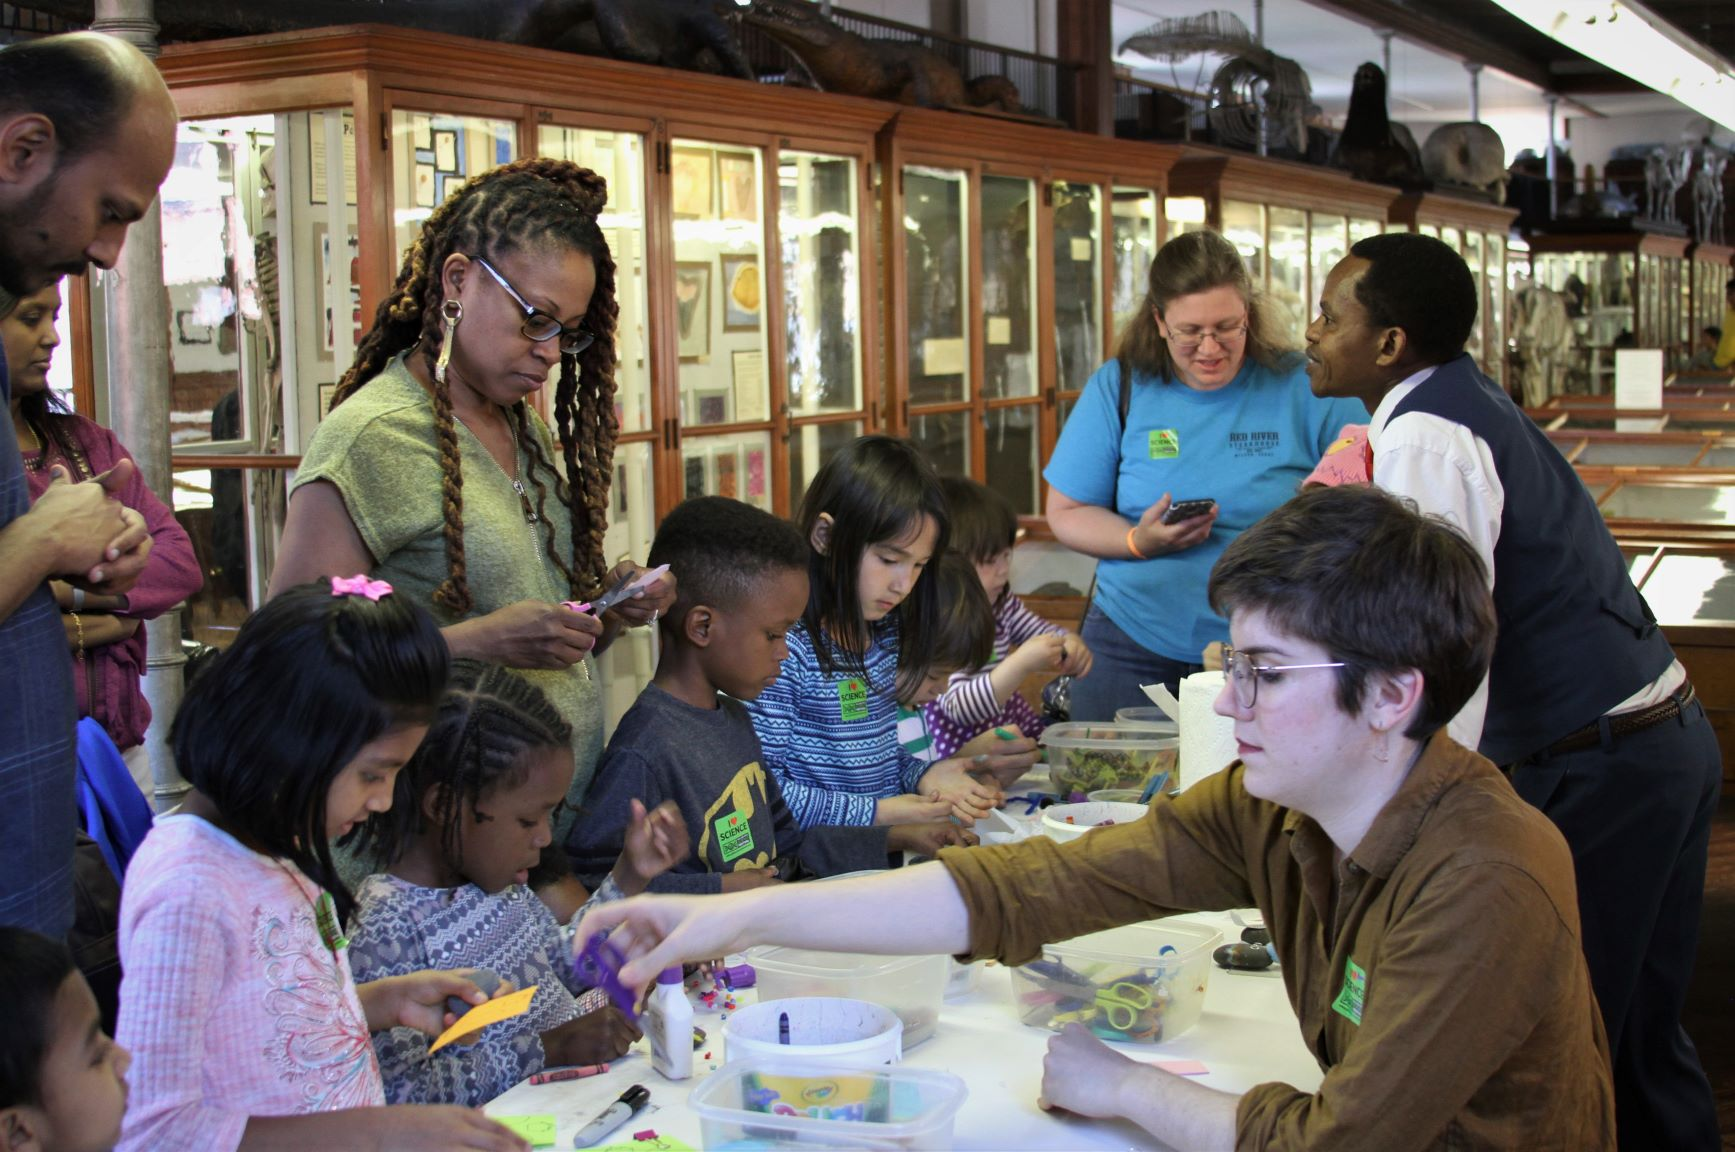 At Be a Geologist! in 2018, children decorate pet rocks in the Wagner's museum.